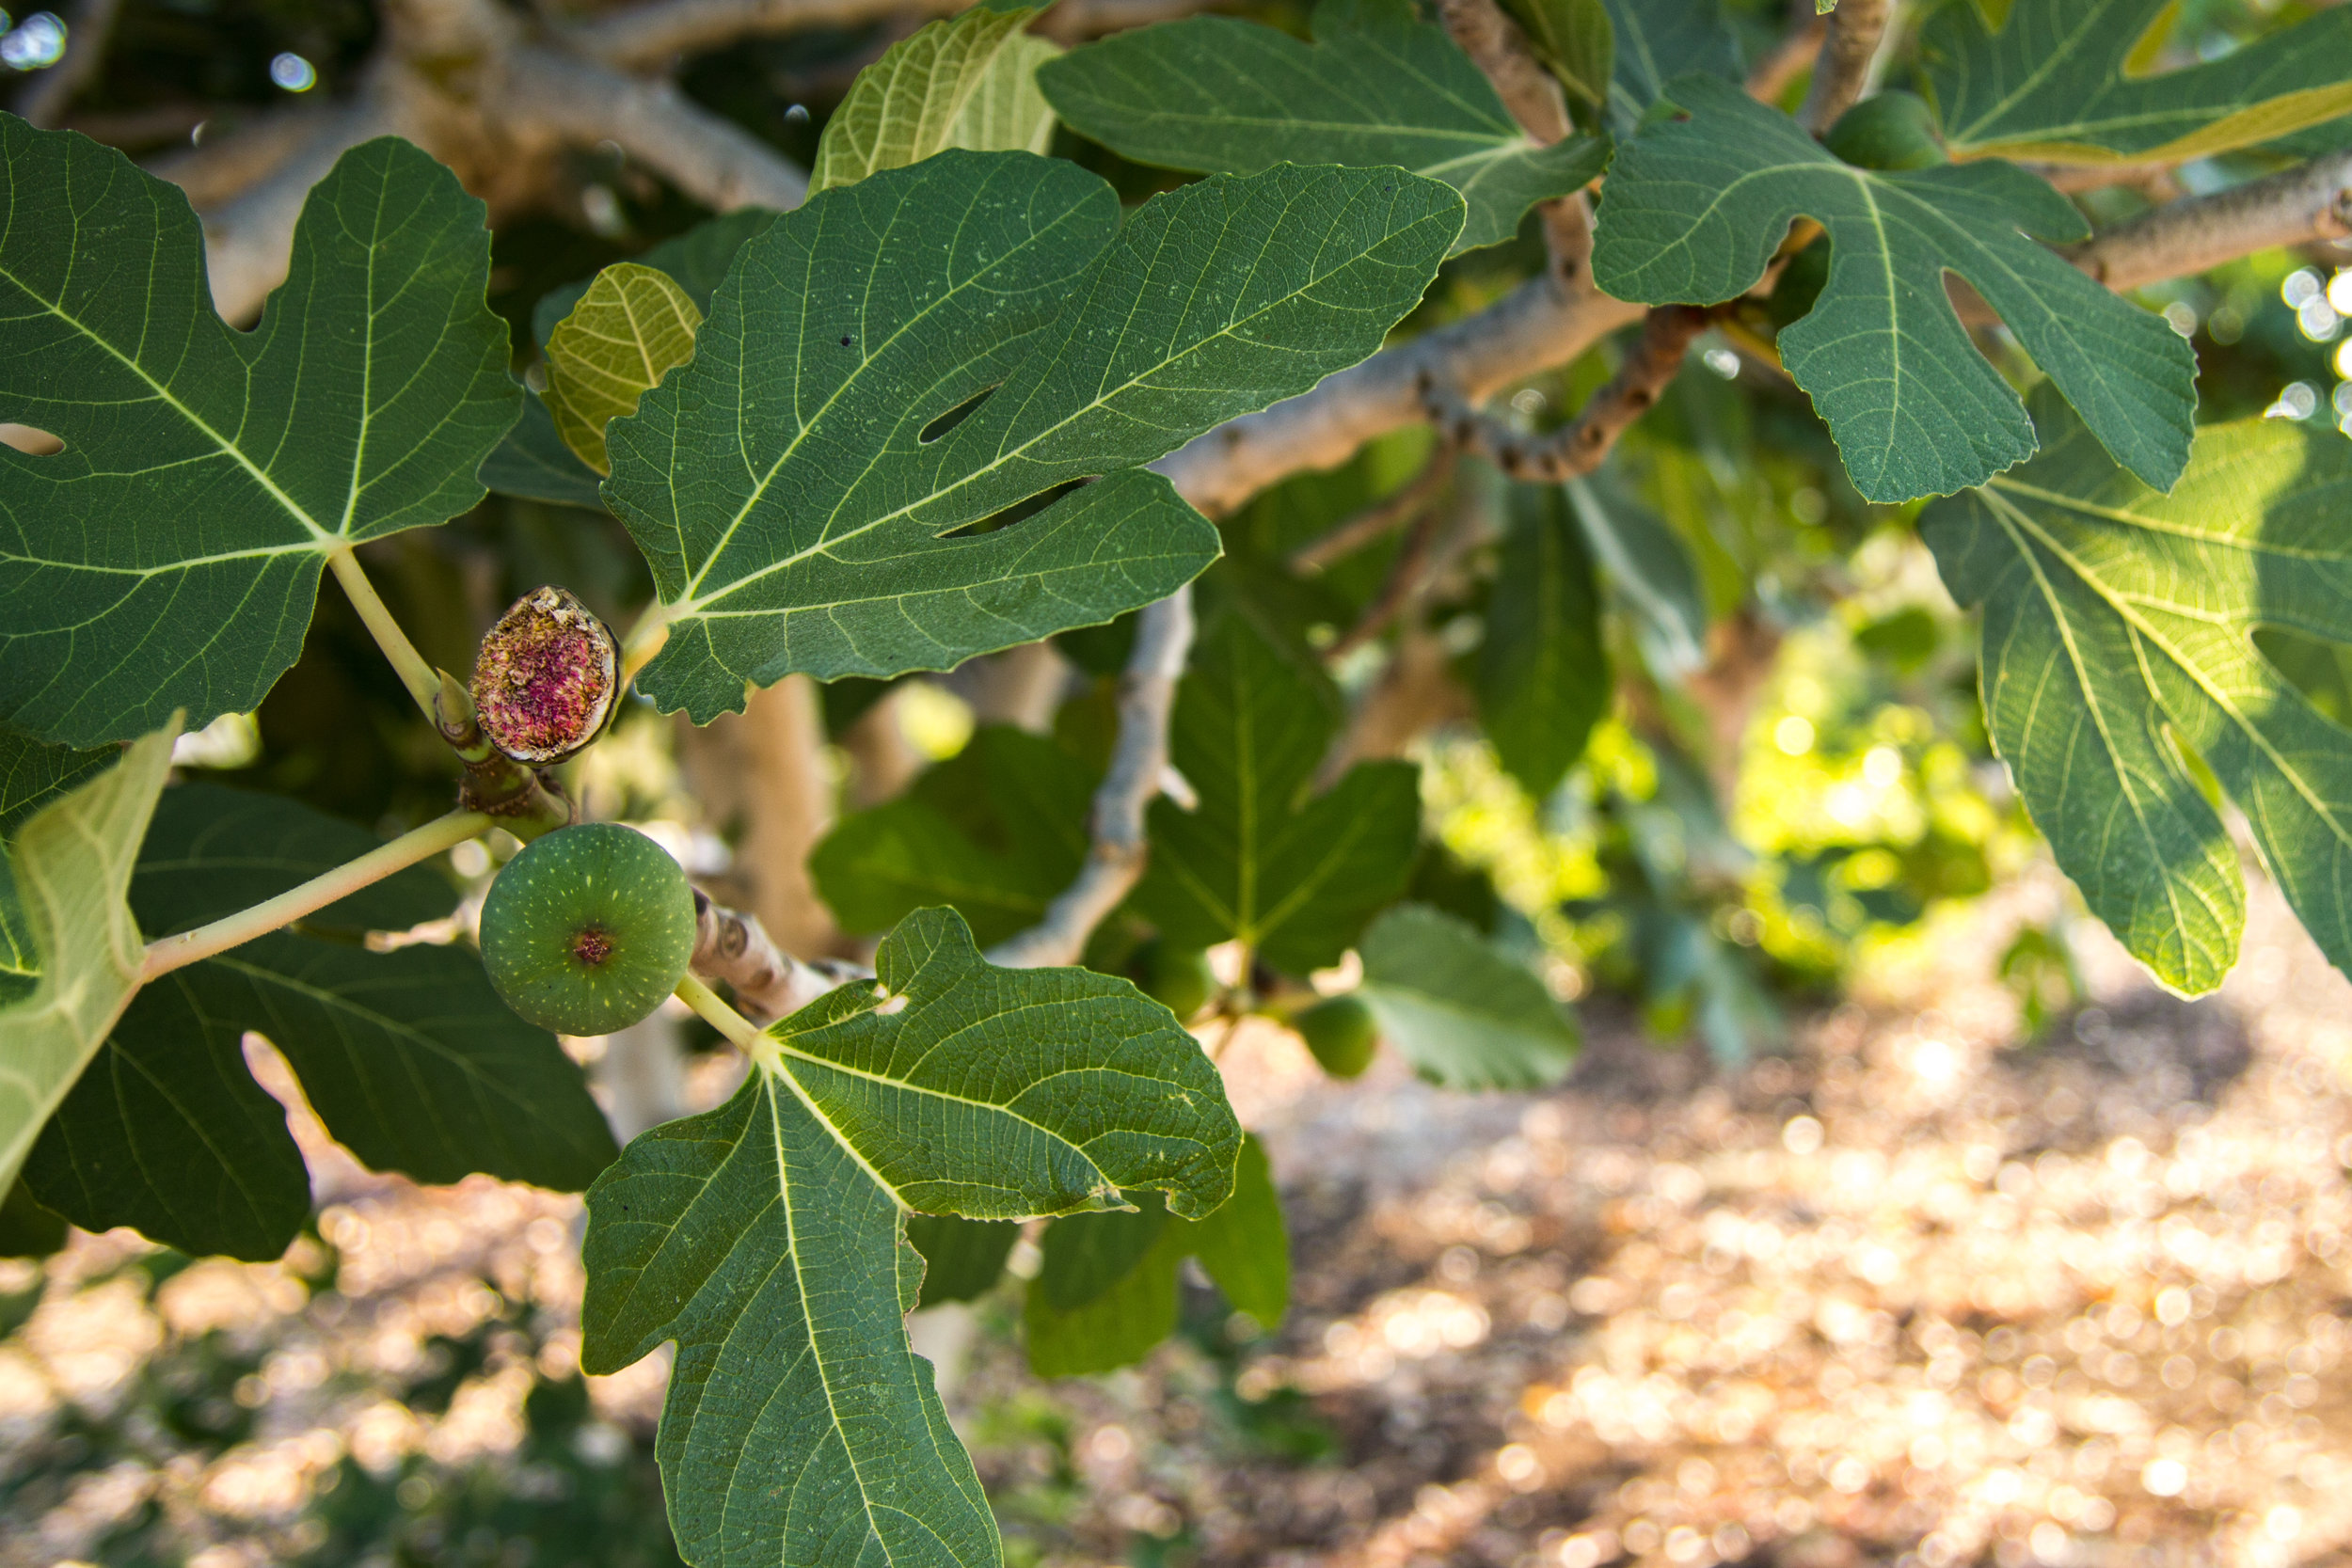 Figs are also coming into season now.. just barely!